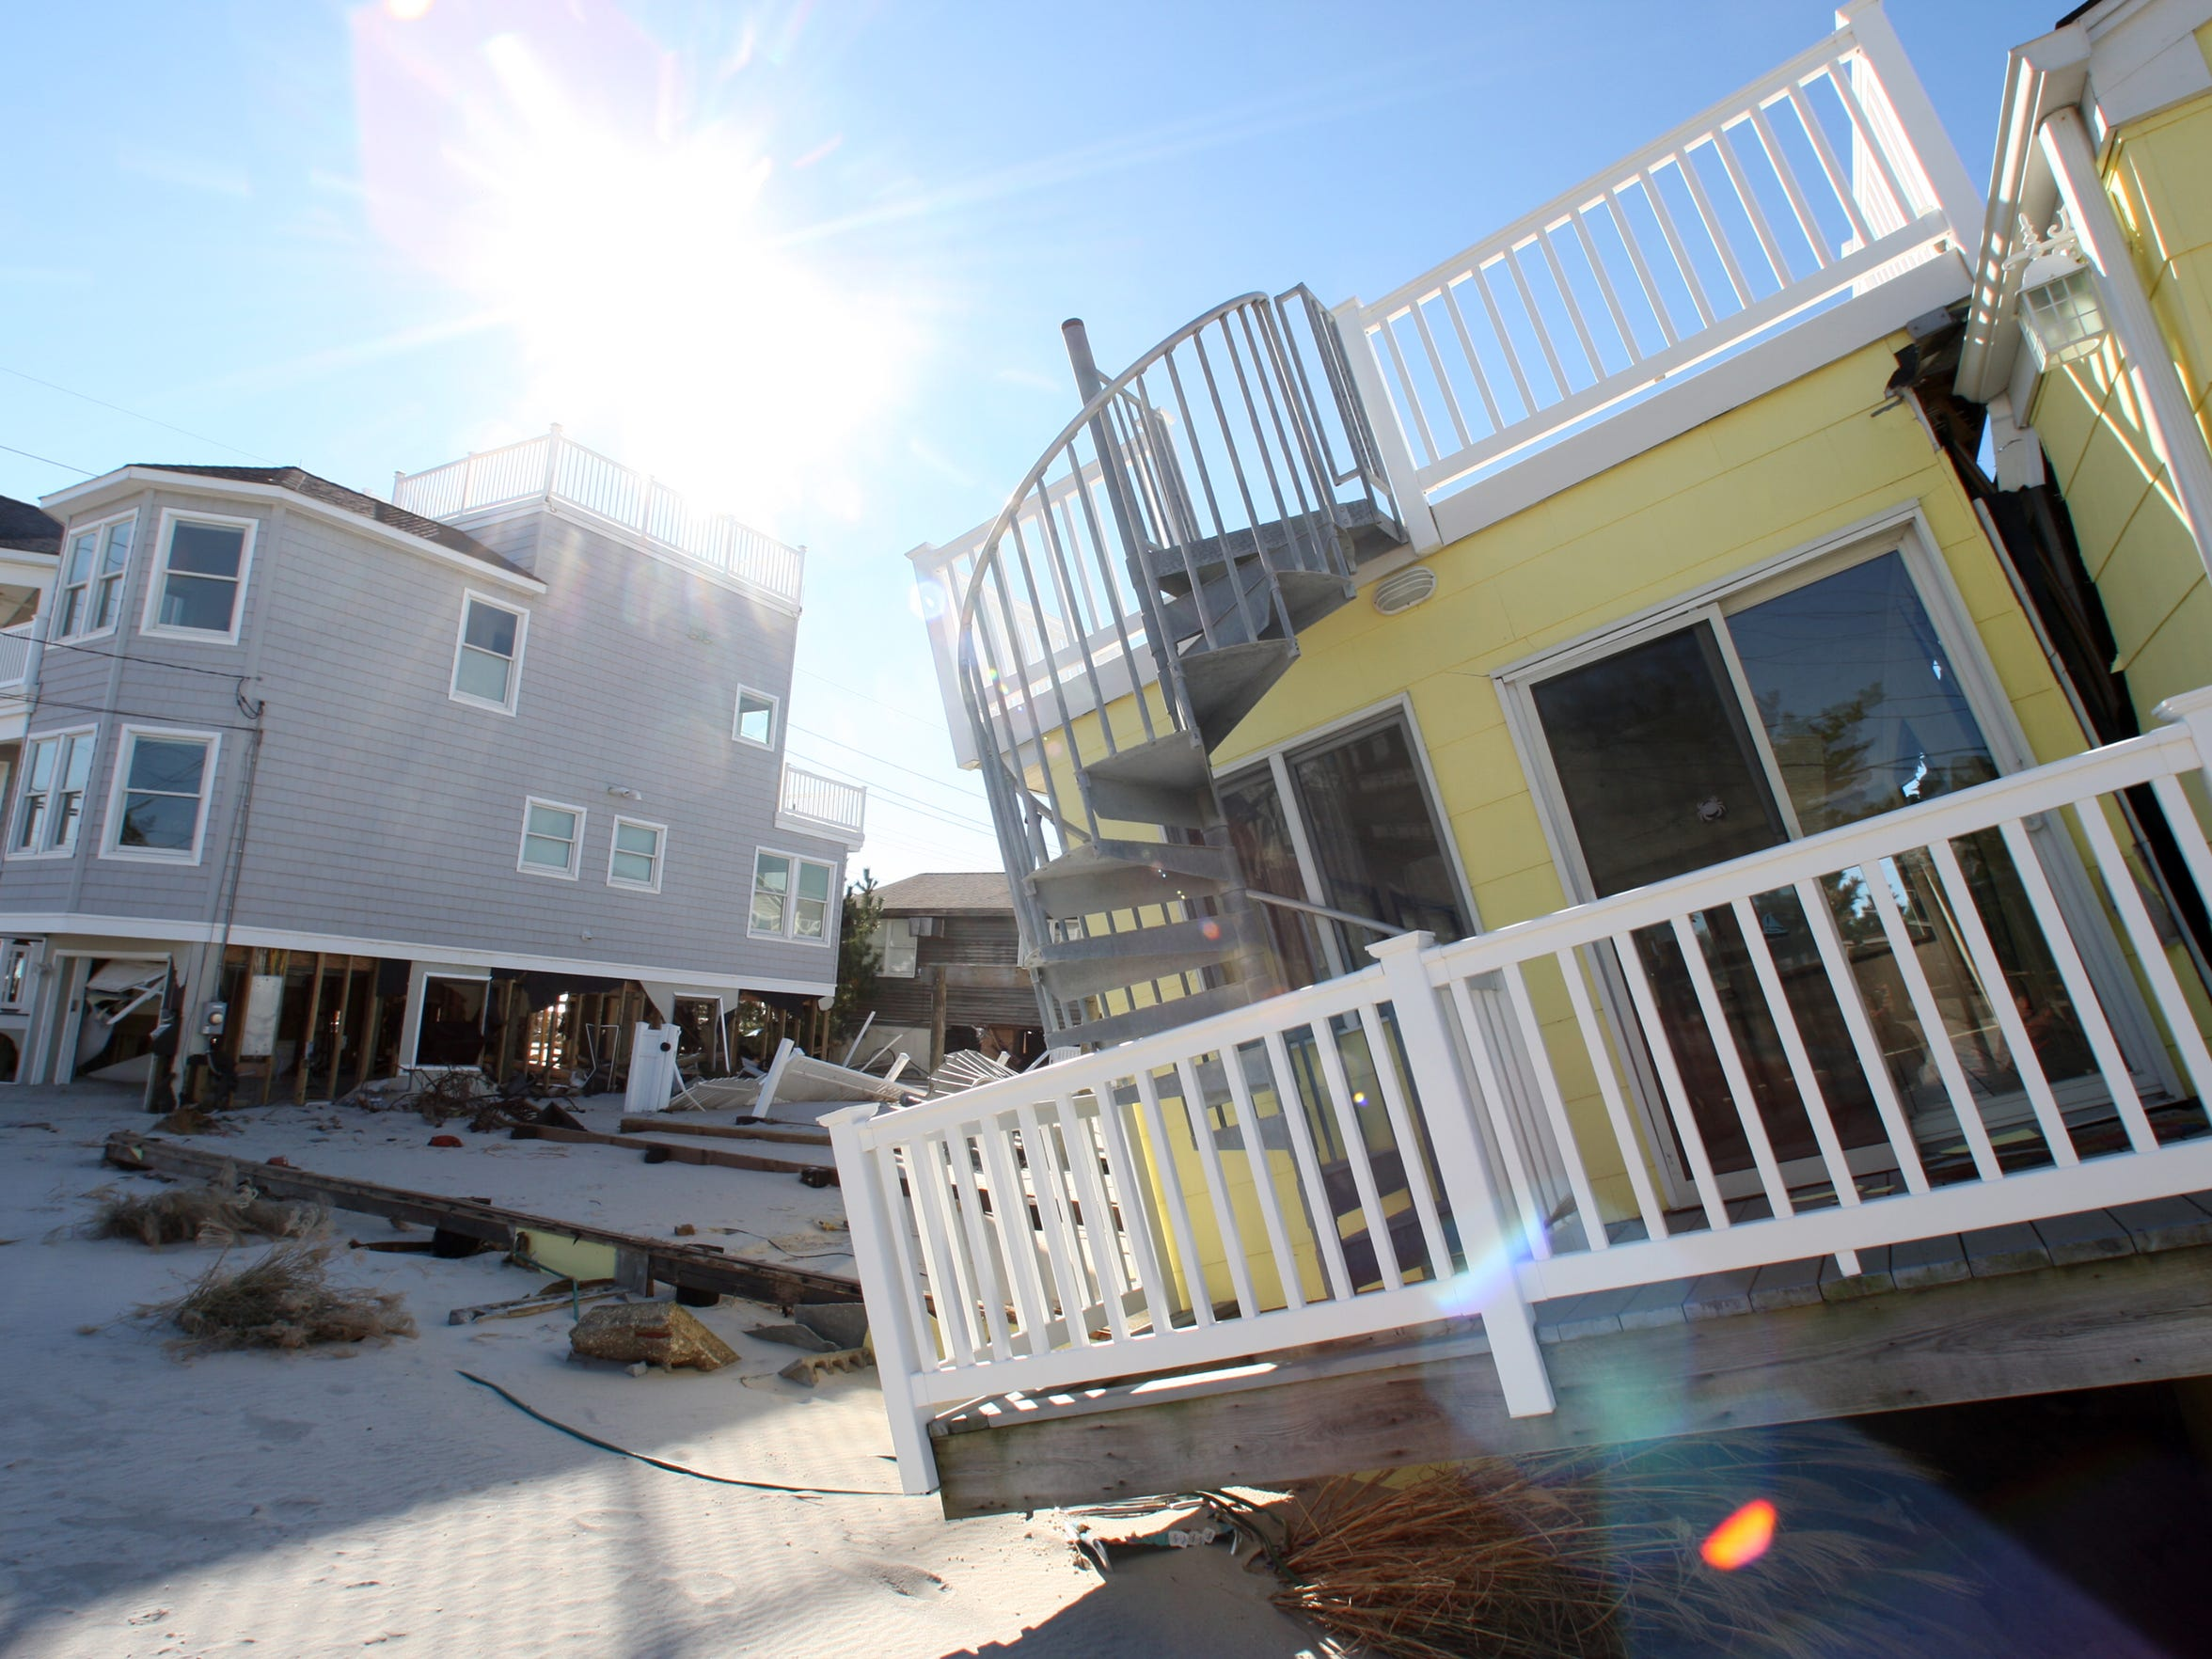 A home knocked off its foundation after superstorm